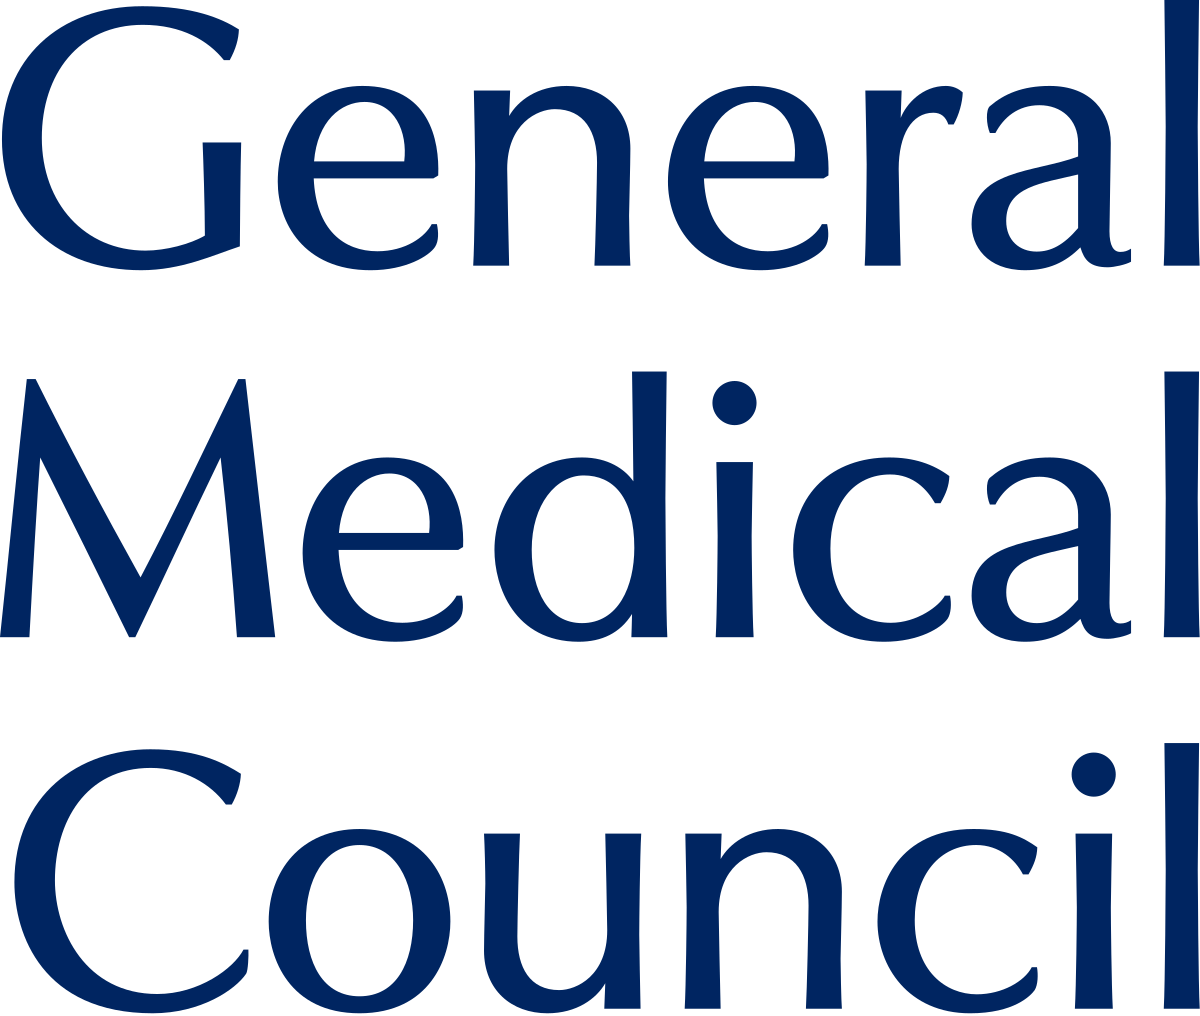 Winners announced for Excellent Medical Education Joint ASME/GMC Awards 2019 UG and PG categories